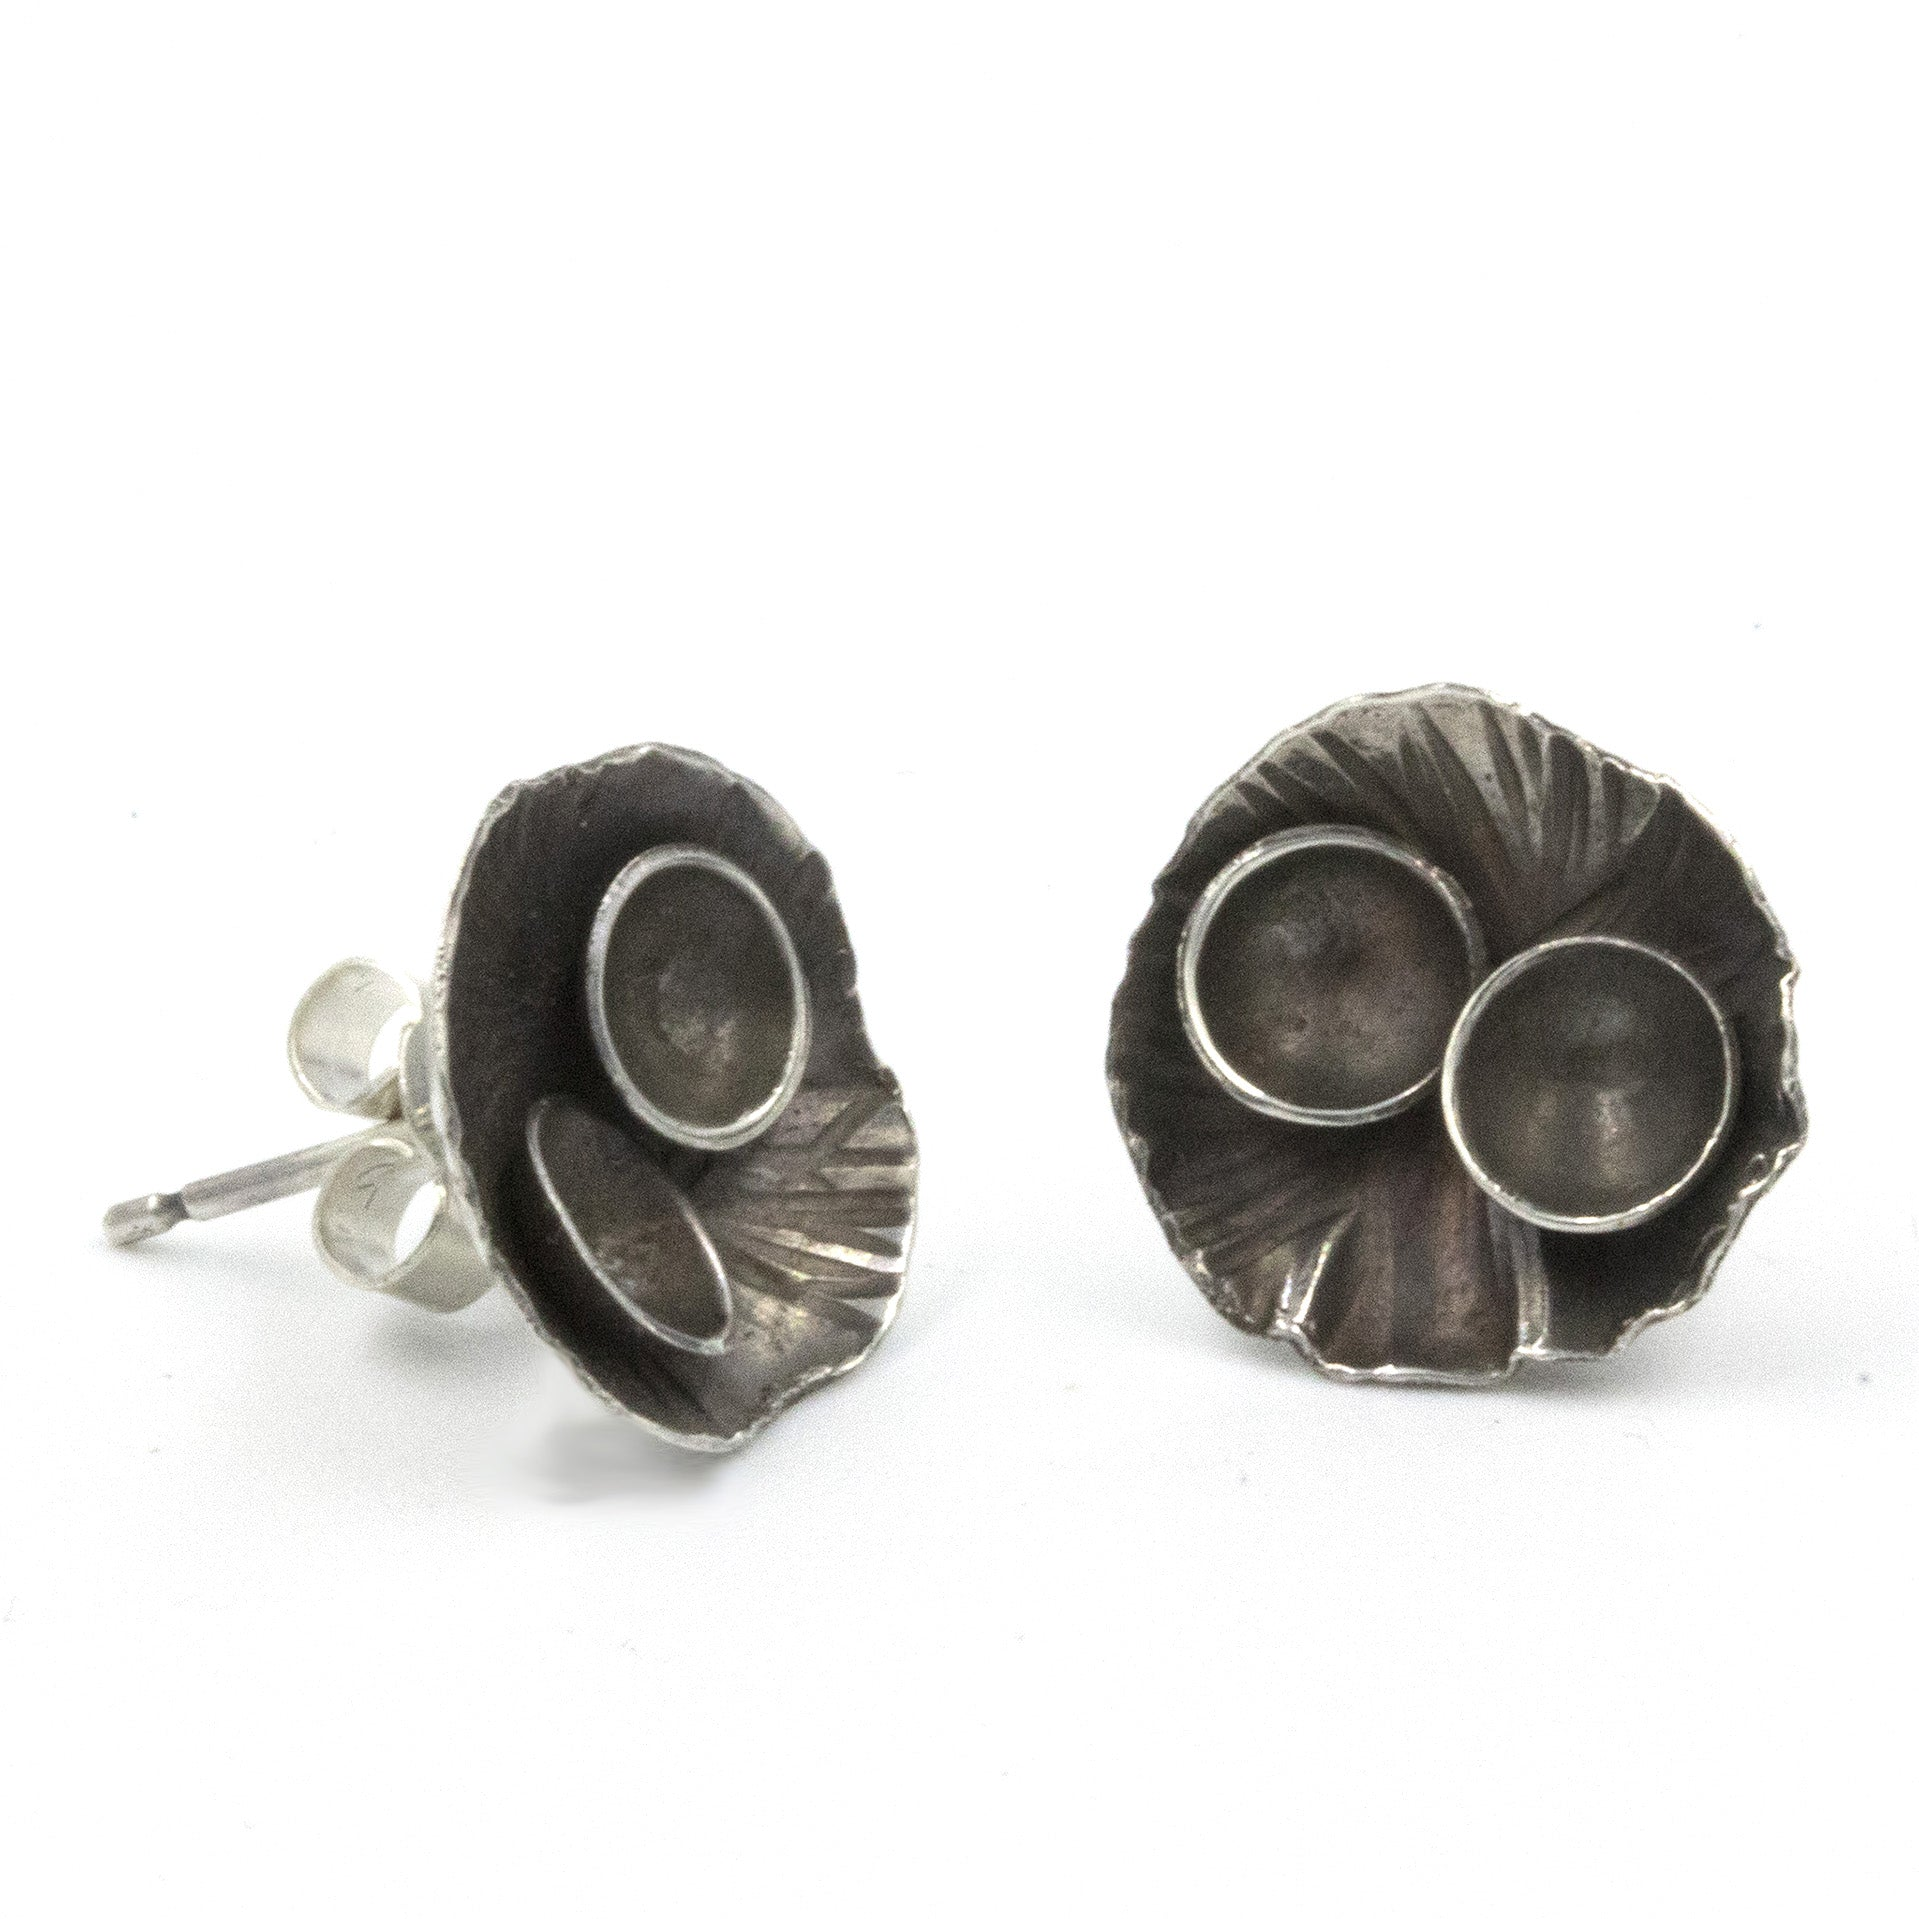 Handmade Rock Pool stud earrings, made in sterling silver, and inspired by rock pools on the Cornish Coast